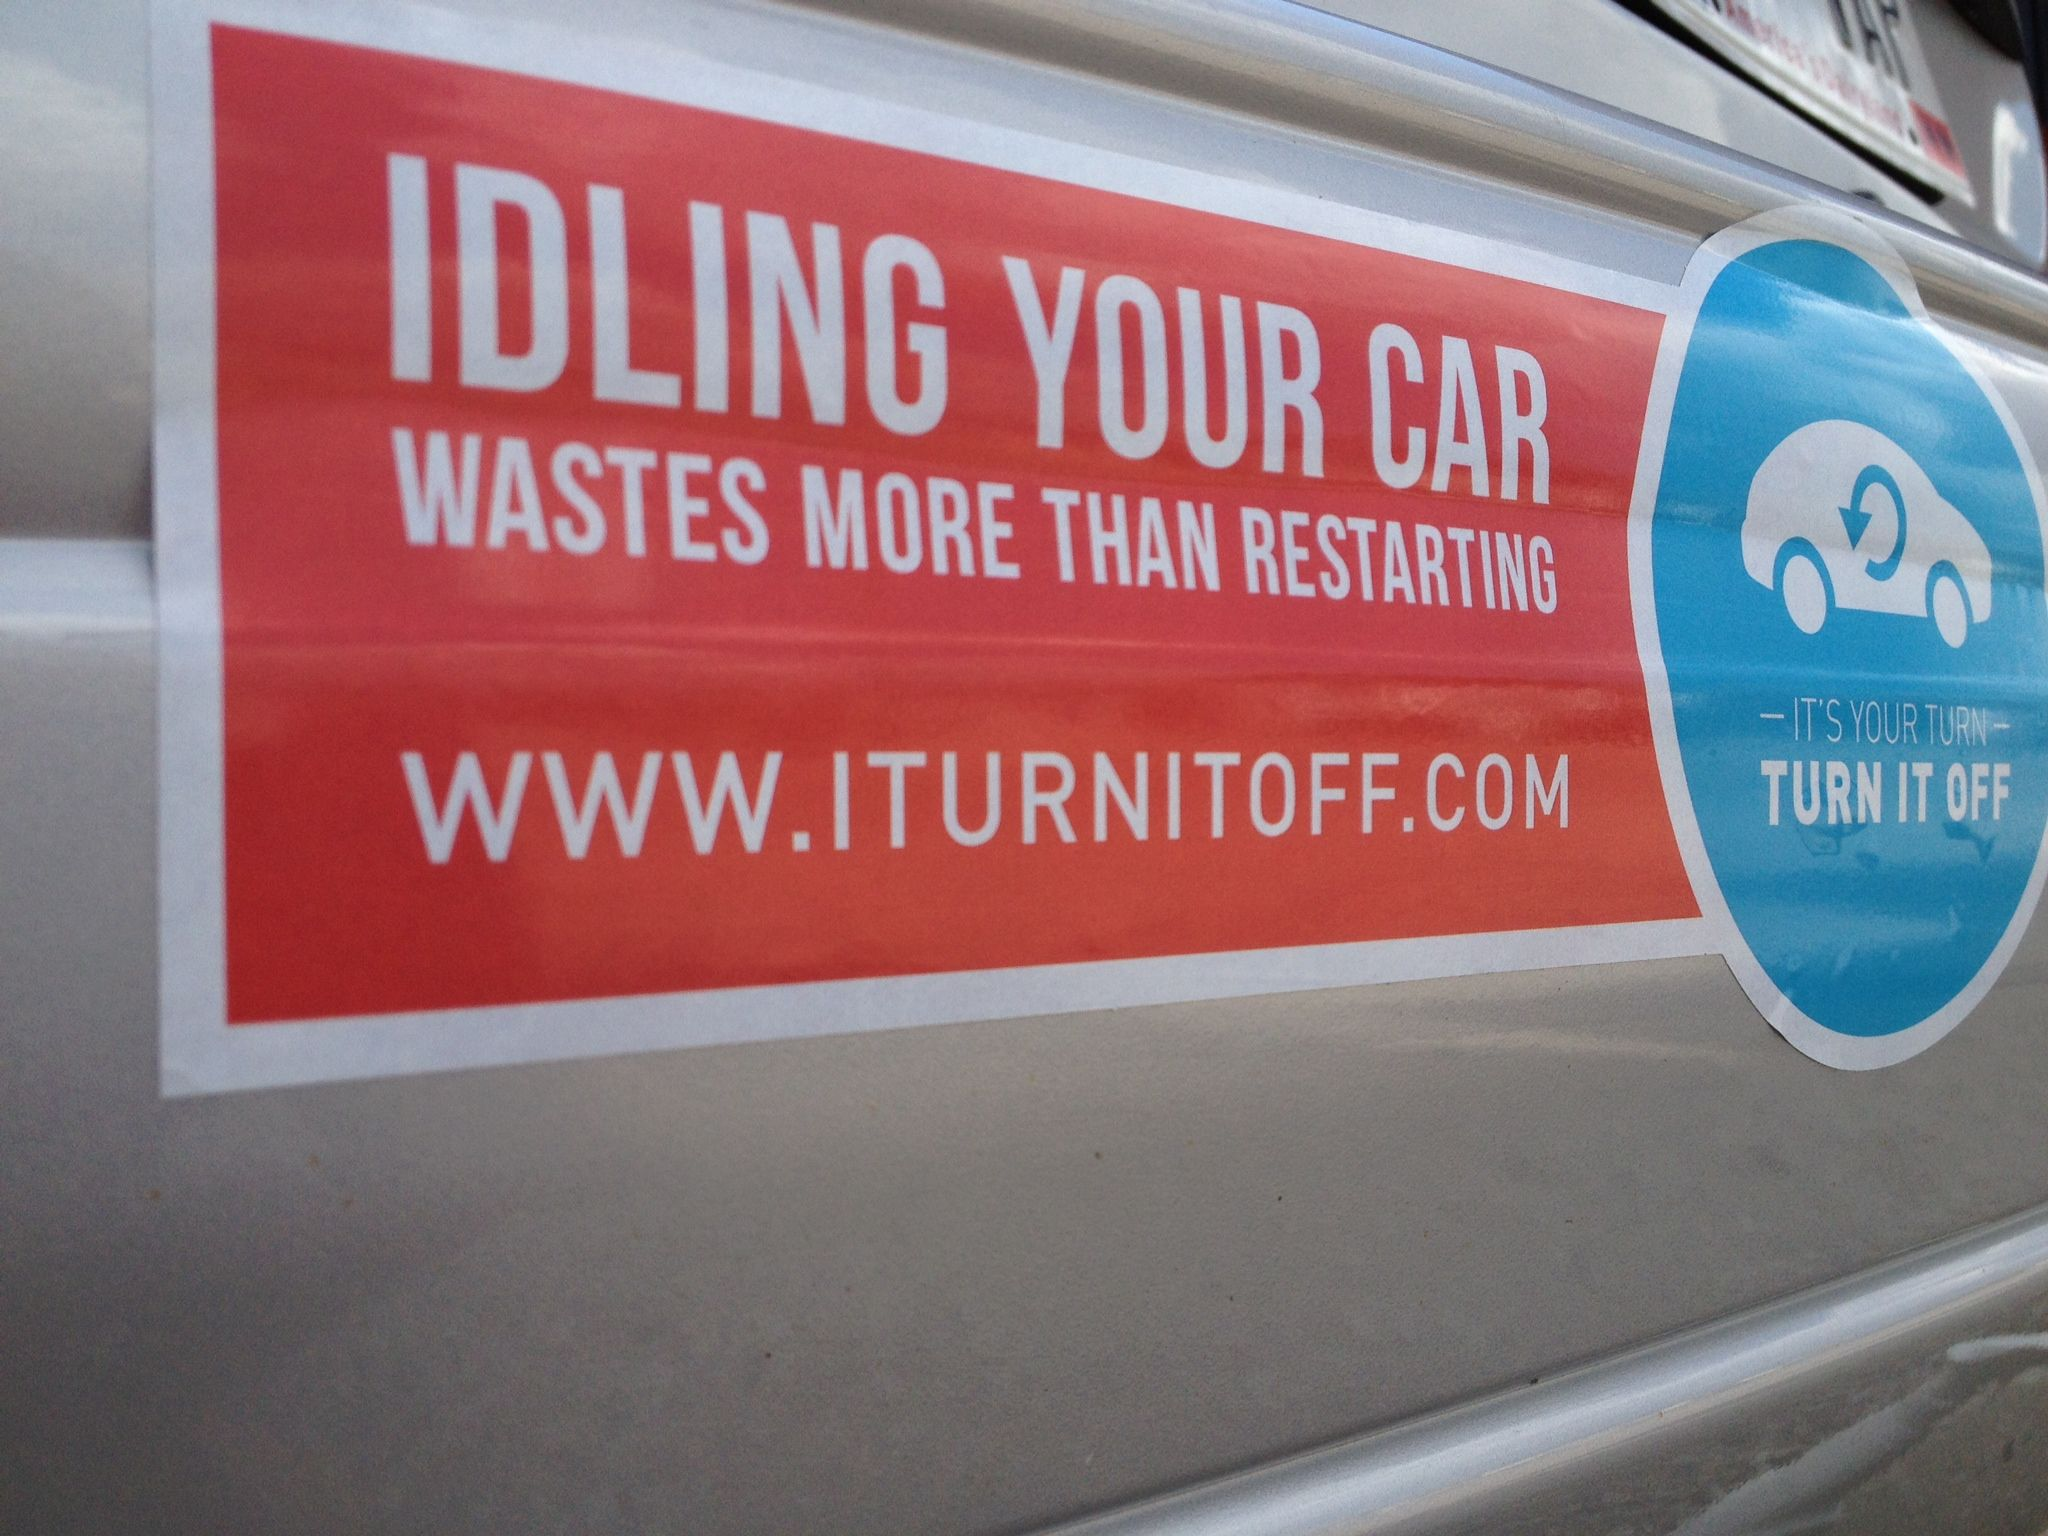 Pledge to stop idling your car save money on gas get a